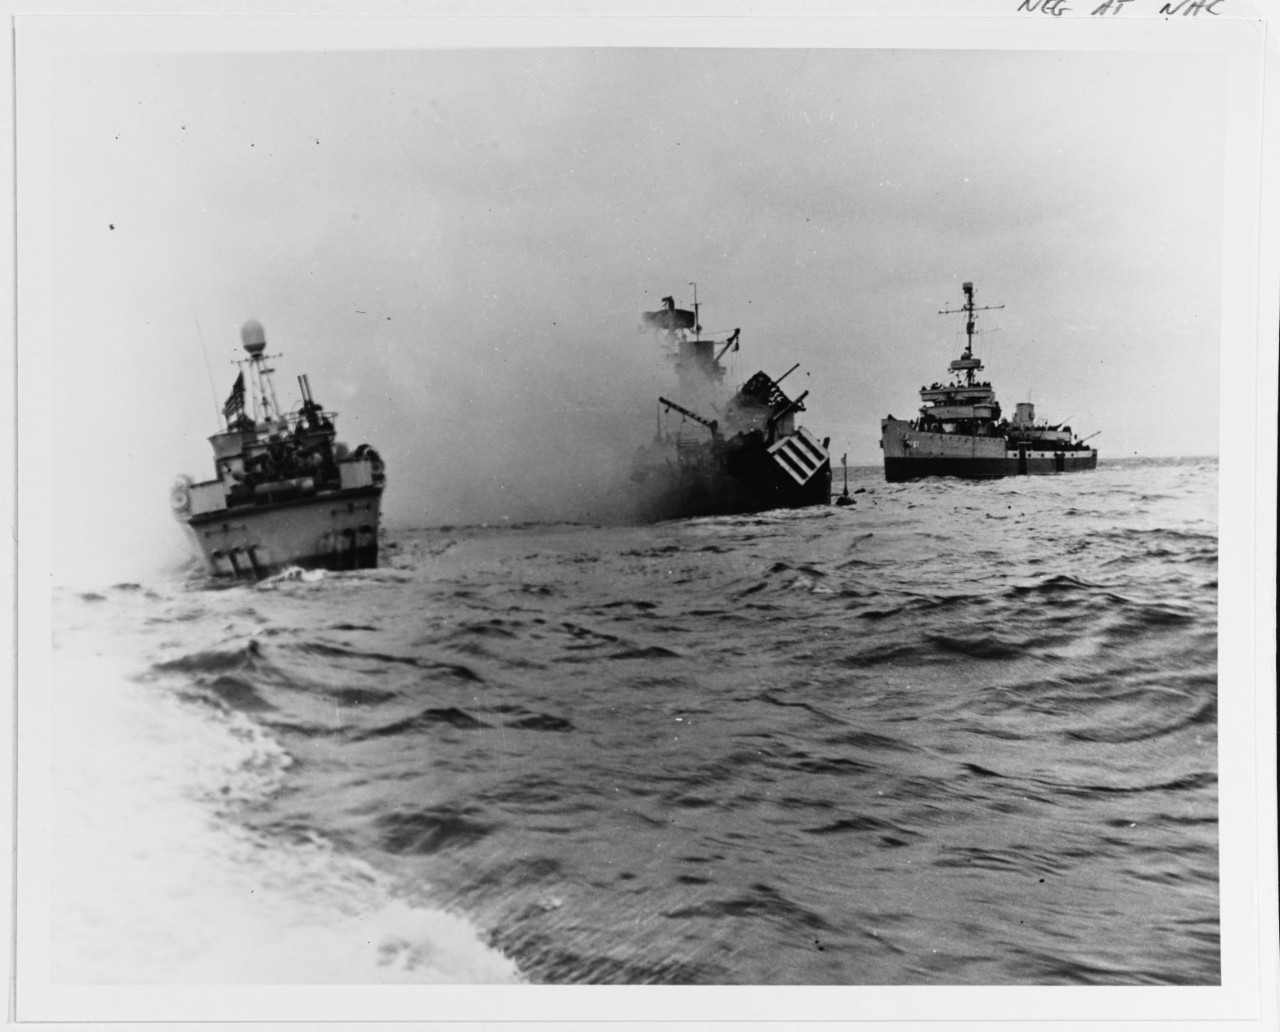 Auk-class minesweeper USS Tide (AM-125) sinking off Utah Beach after striking a mine during the Normandy invasion, 7 June 1944. USS PT-509 and USS Pheasant (AM-61) are standing by. Photographed from USS Threat (AM-124). 80-G-651677